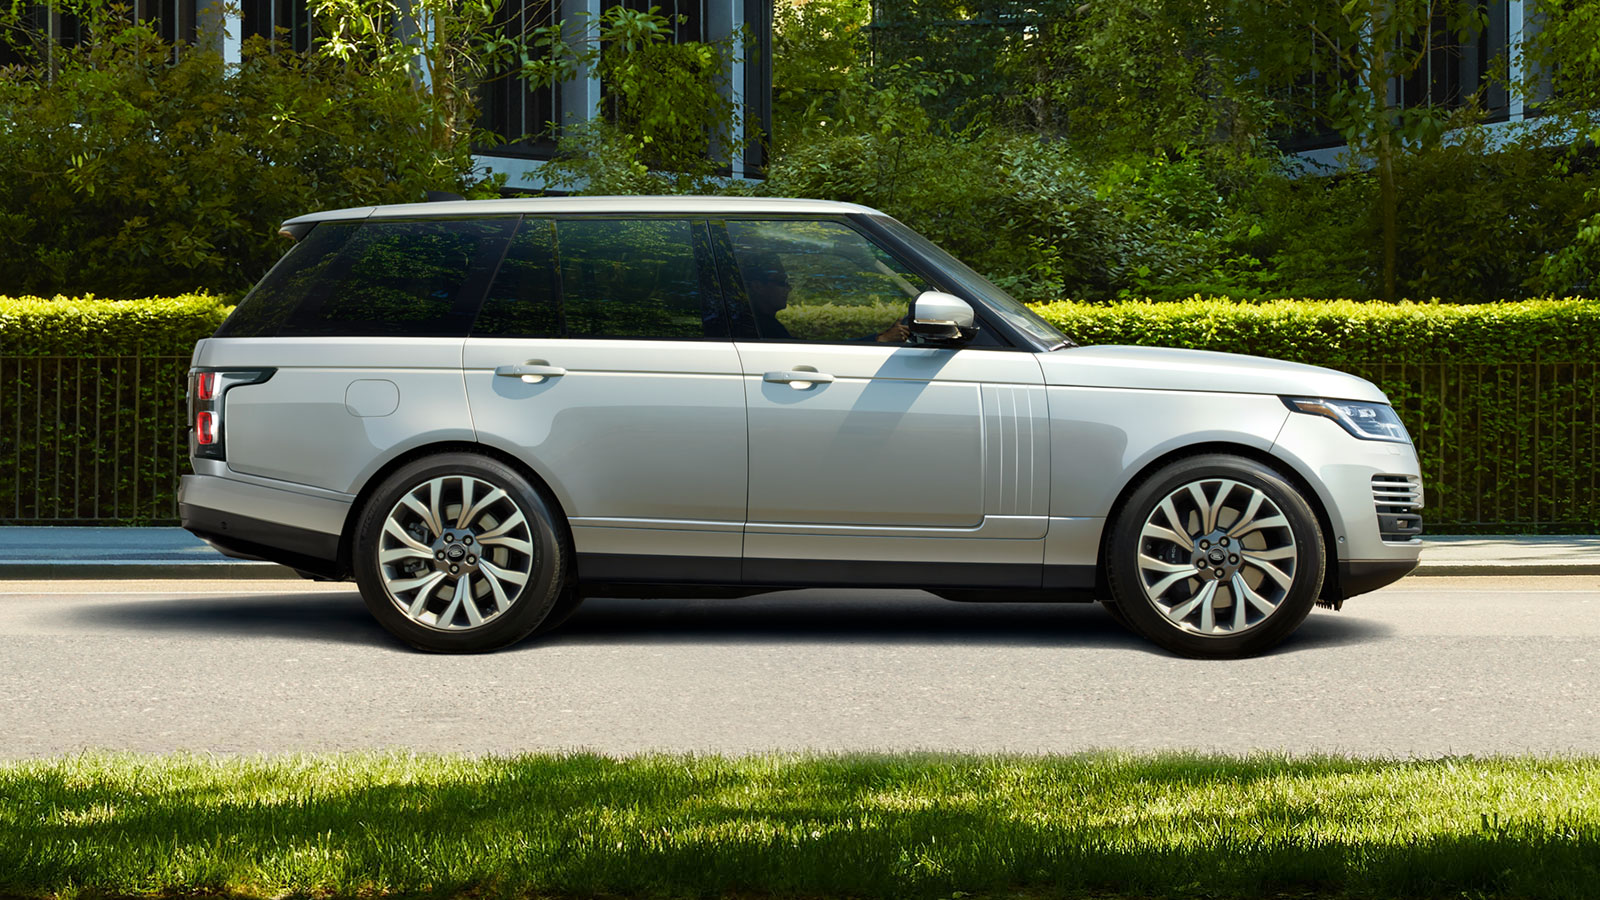 The Range Rover Autobiography with optional Privacy Glass